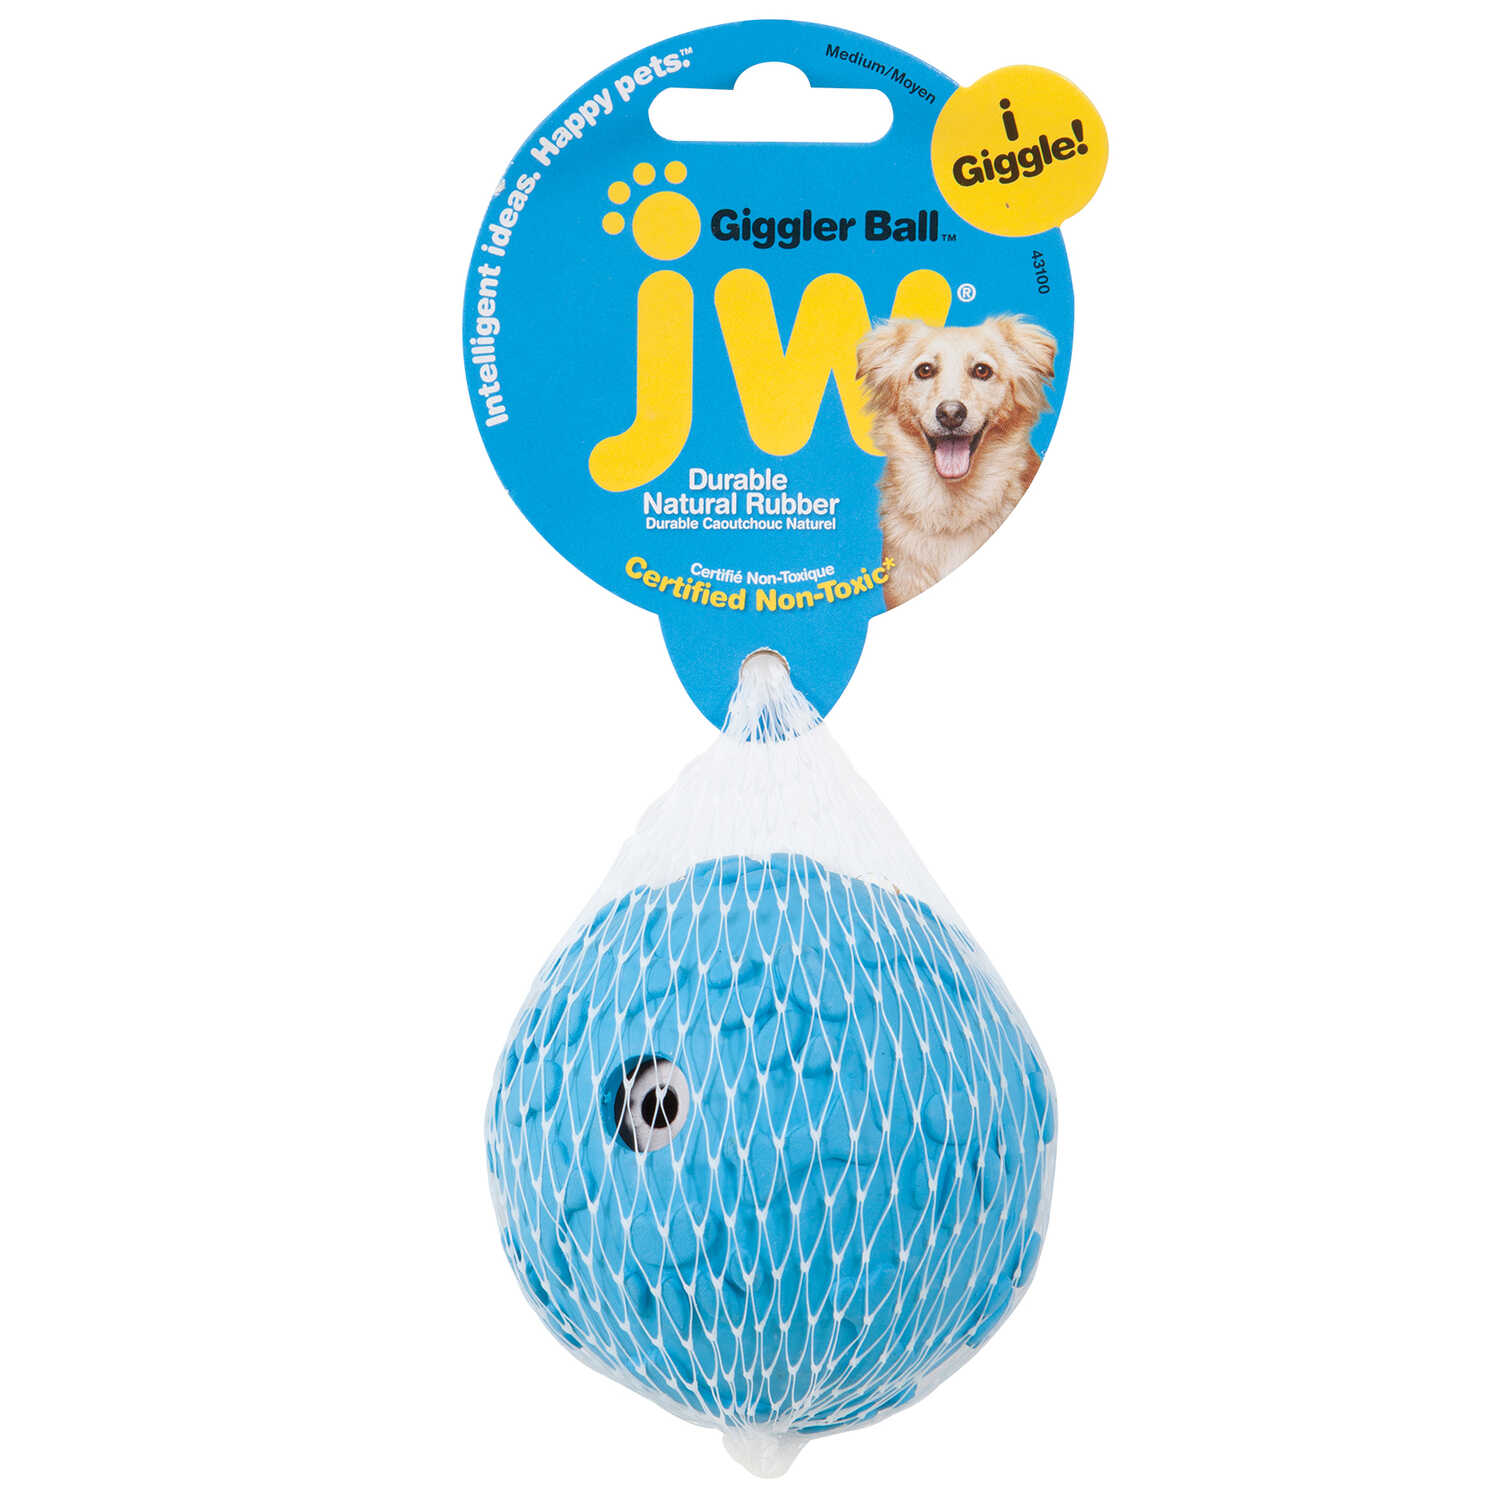 JW Pet  Blue  Giggler Ball  Rubber  Dog Toy  Medium